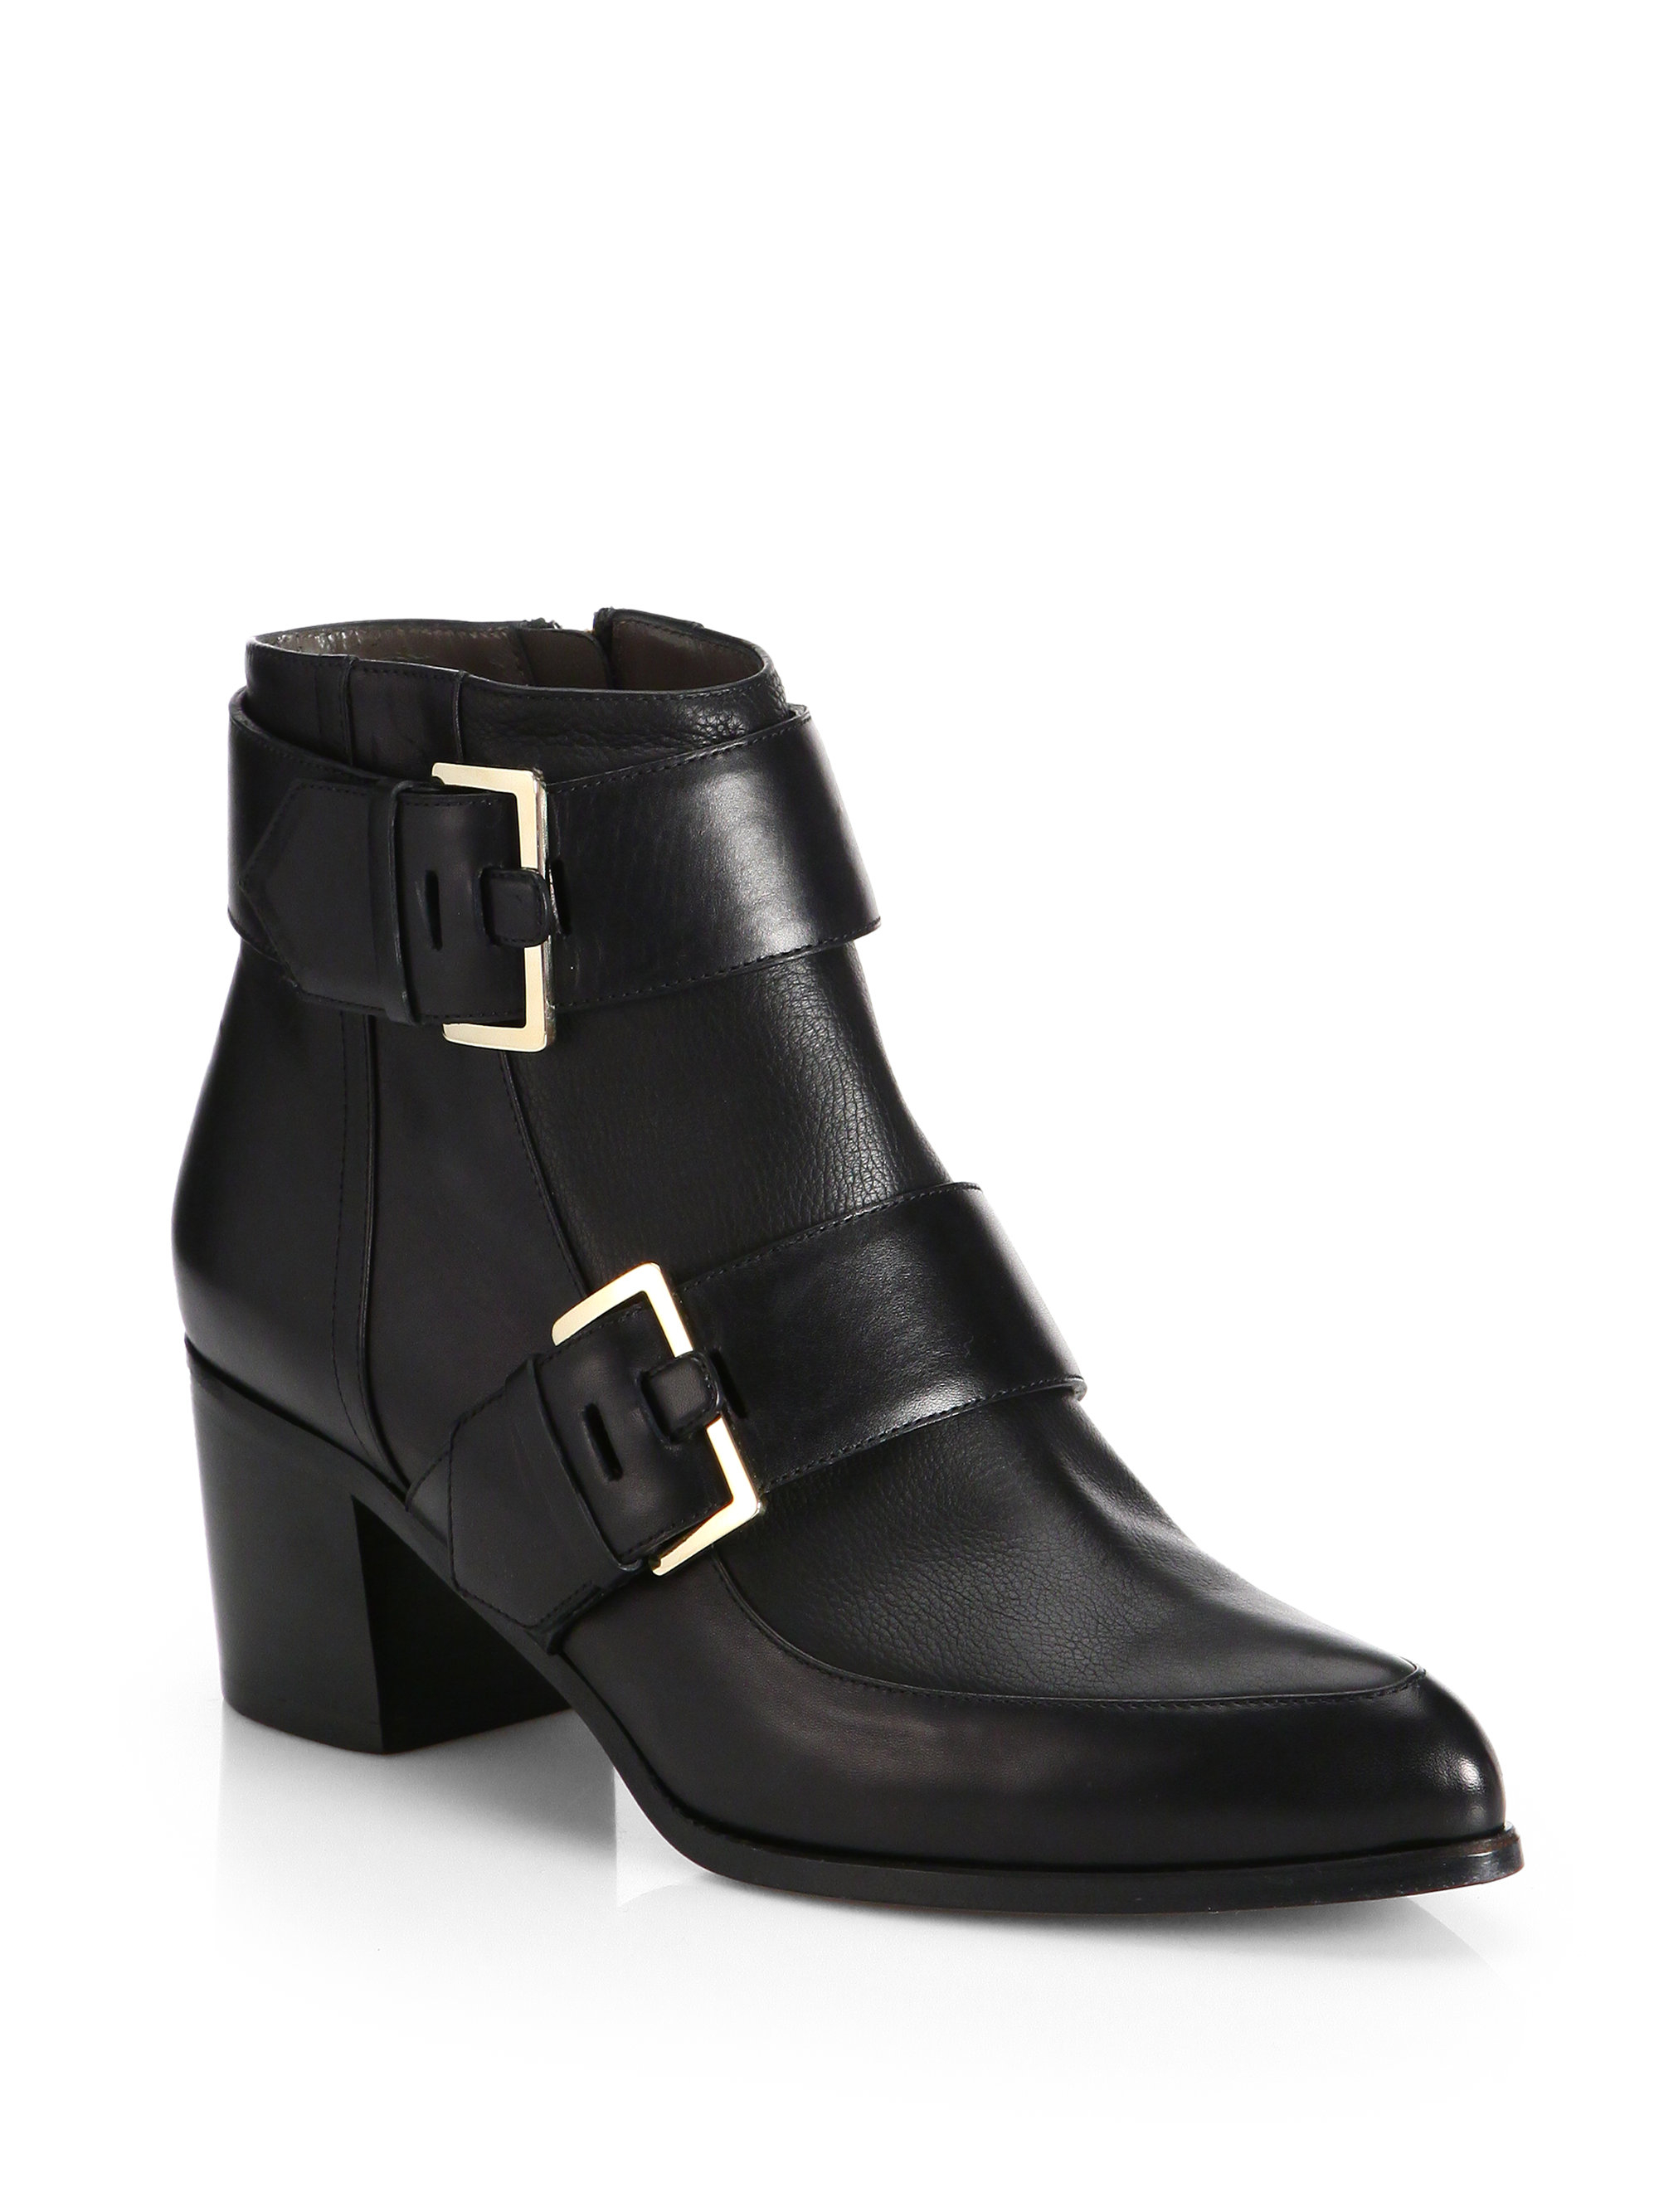 Jason Wu Leather Buckle Ankle Boots In Black Lyst